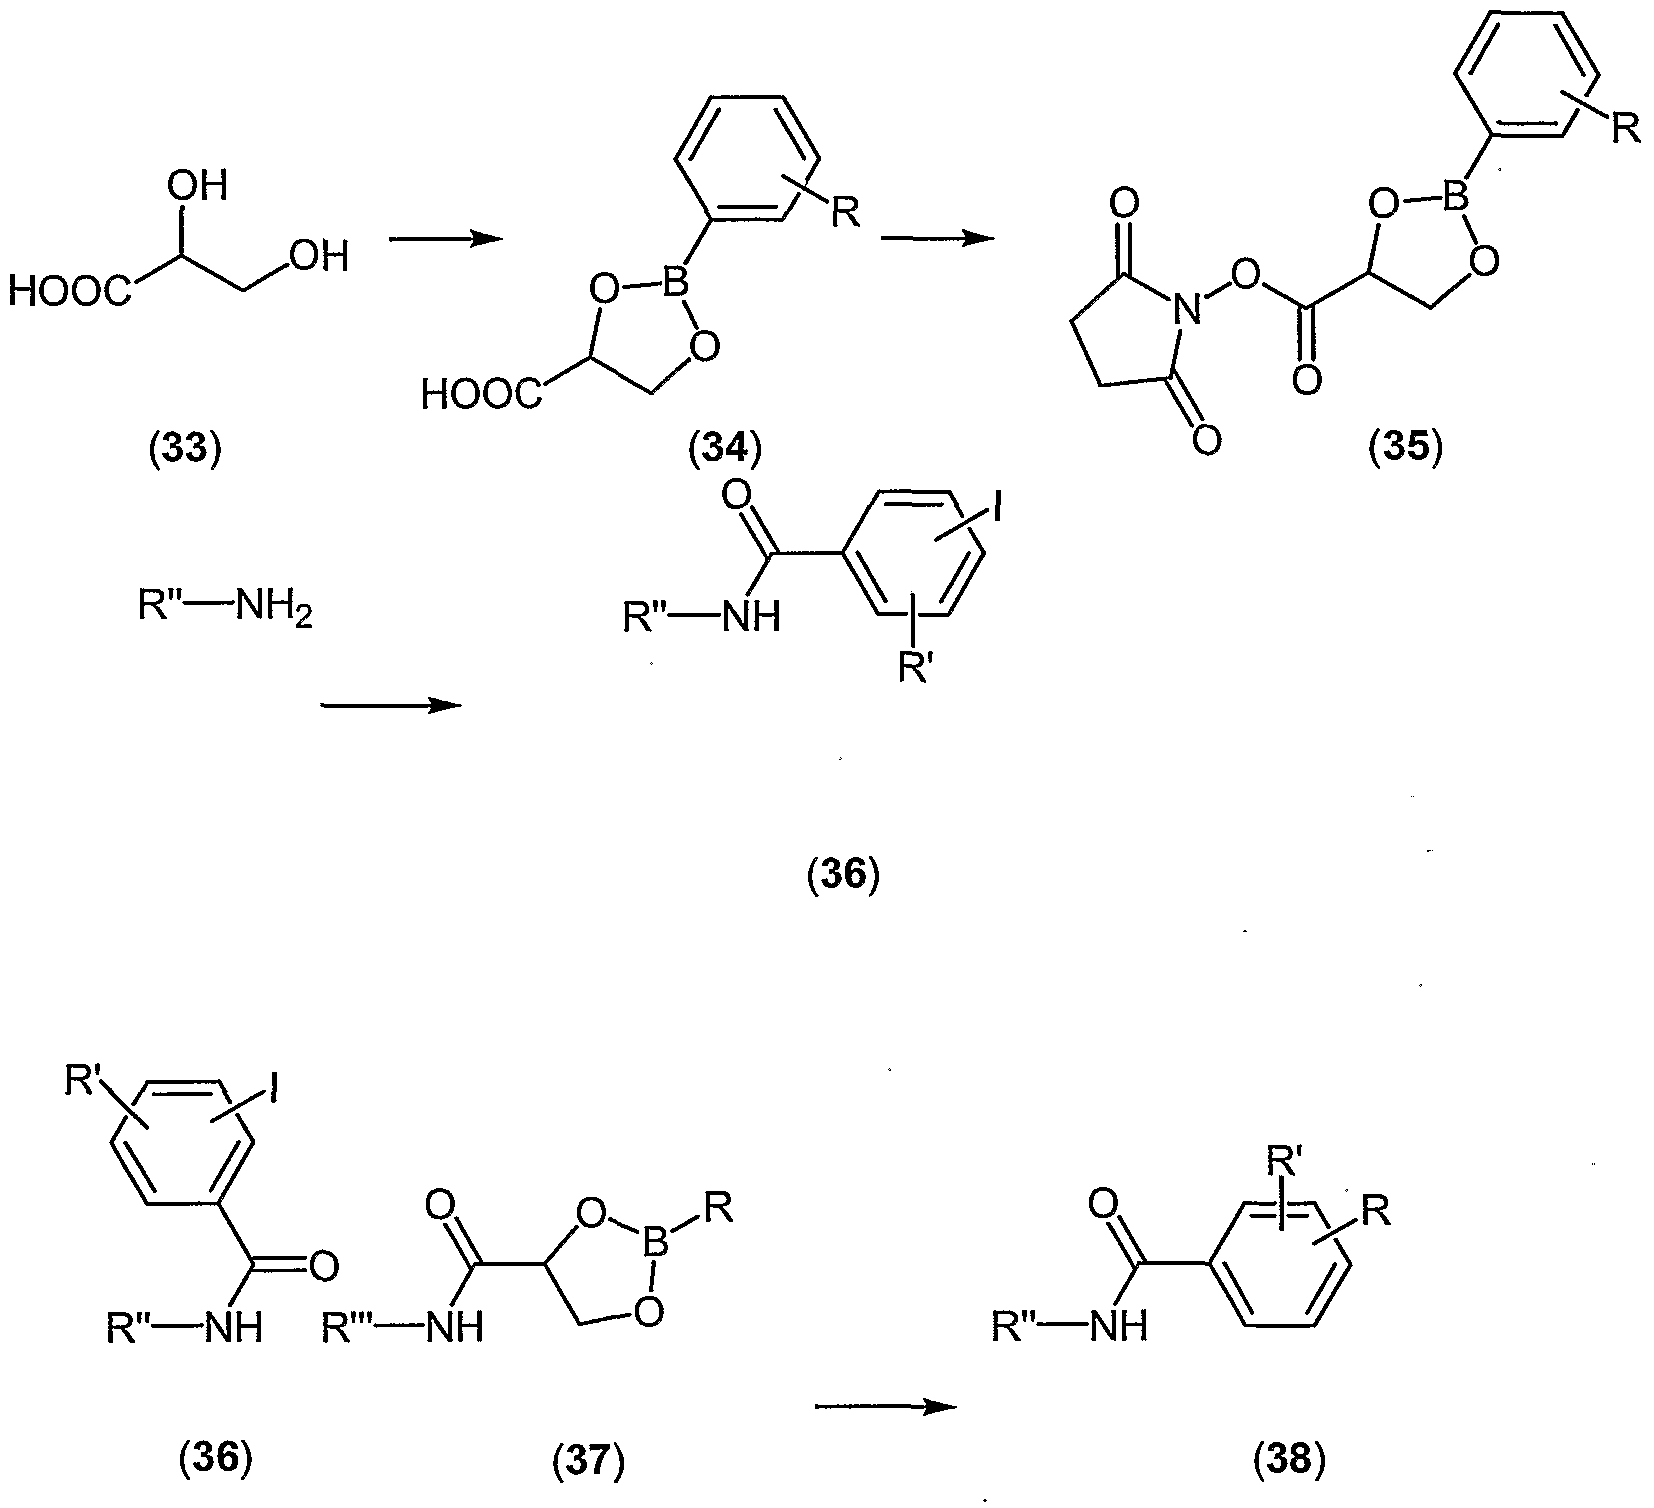 Wo2007062664a2 Enzymatic Encoding Methods For Efficient Synthesis 2g Fuse Box Layouts Merged 77 Cover Map Fuses Diagram Location Figure Imgf000123 0001